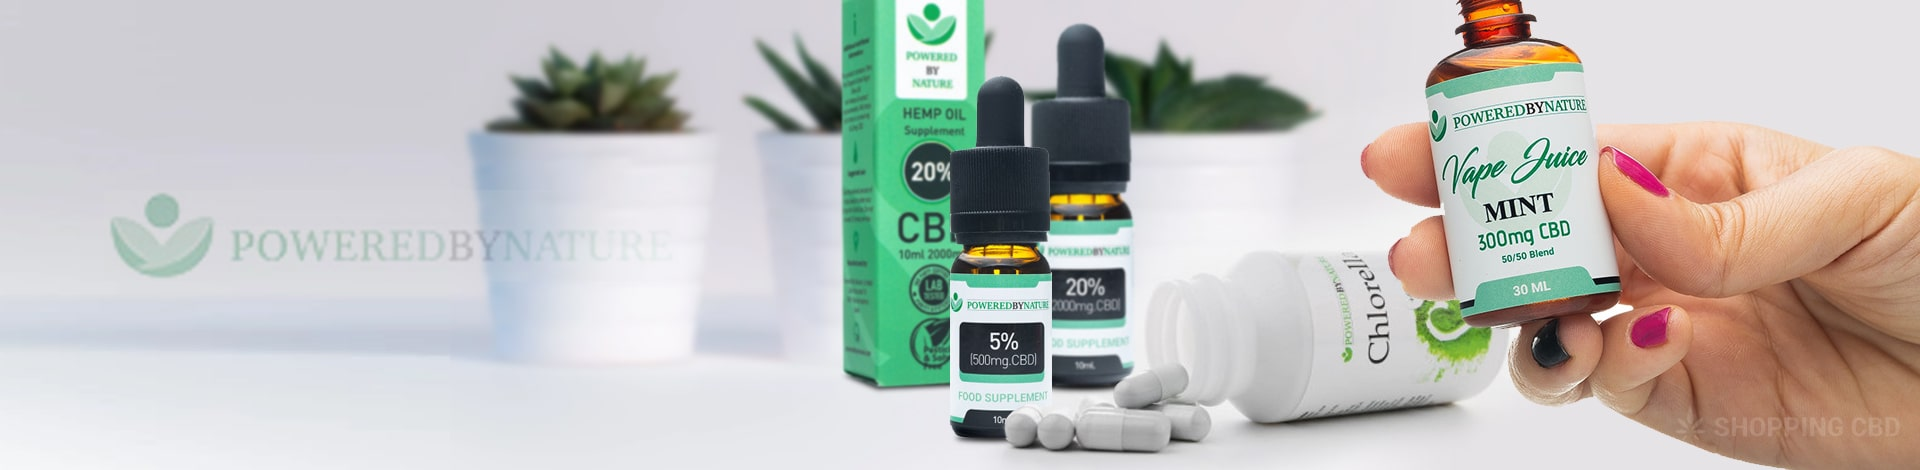 powered by nature CBD Vape Juices